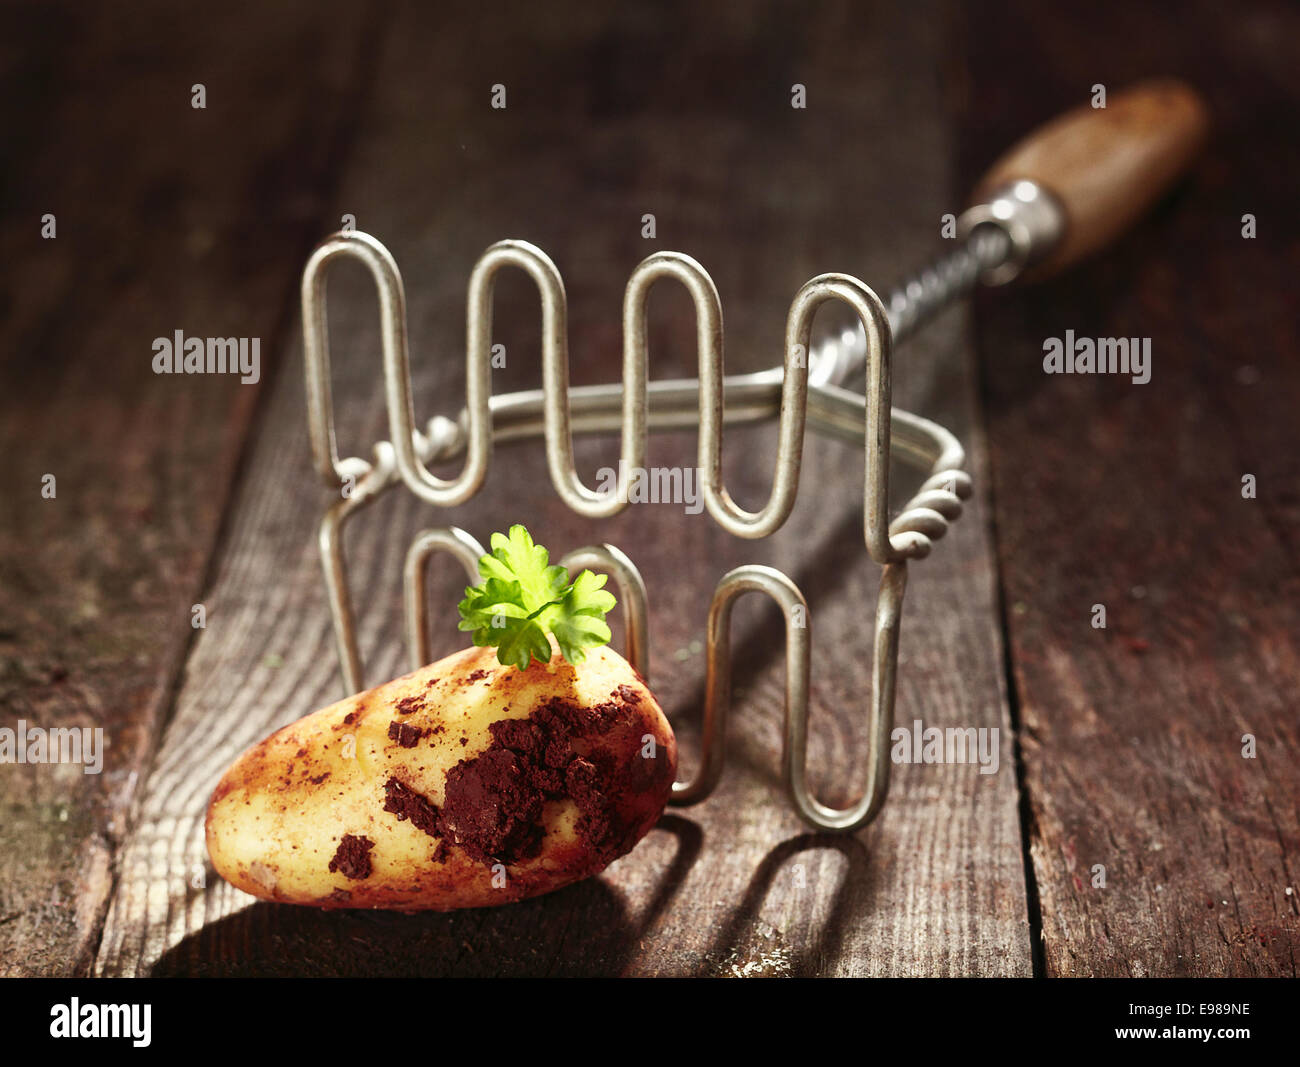 Freshly harvested earthy farm potato on a grungy wooden surface with an old twisted wire potato masher - Stock Image